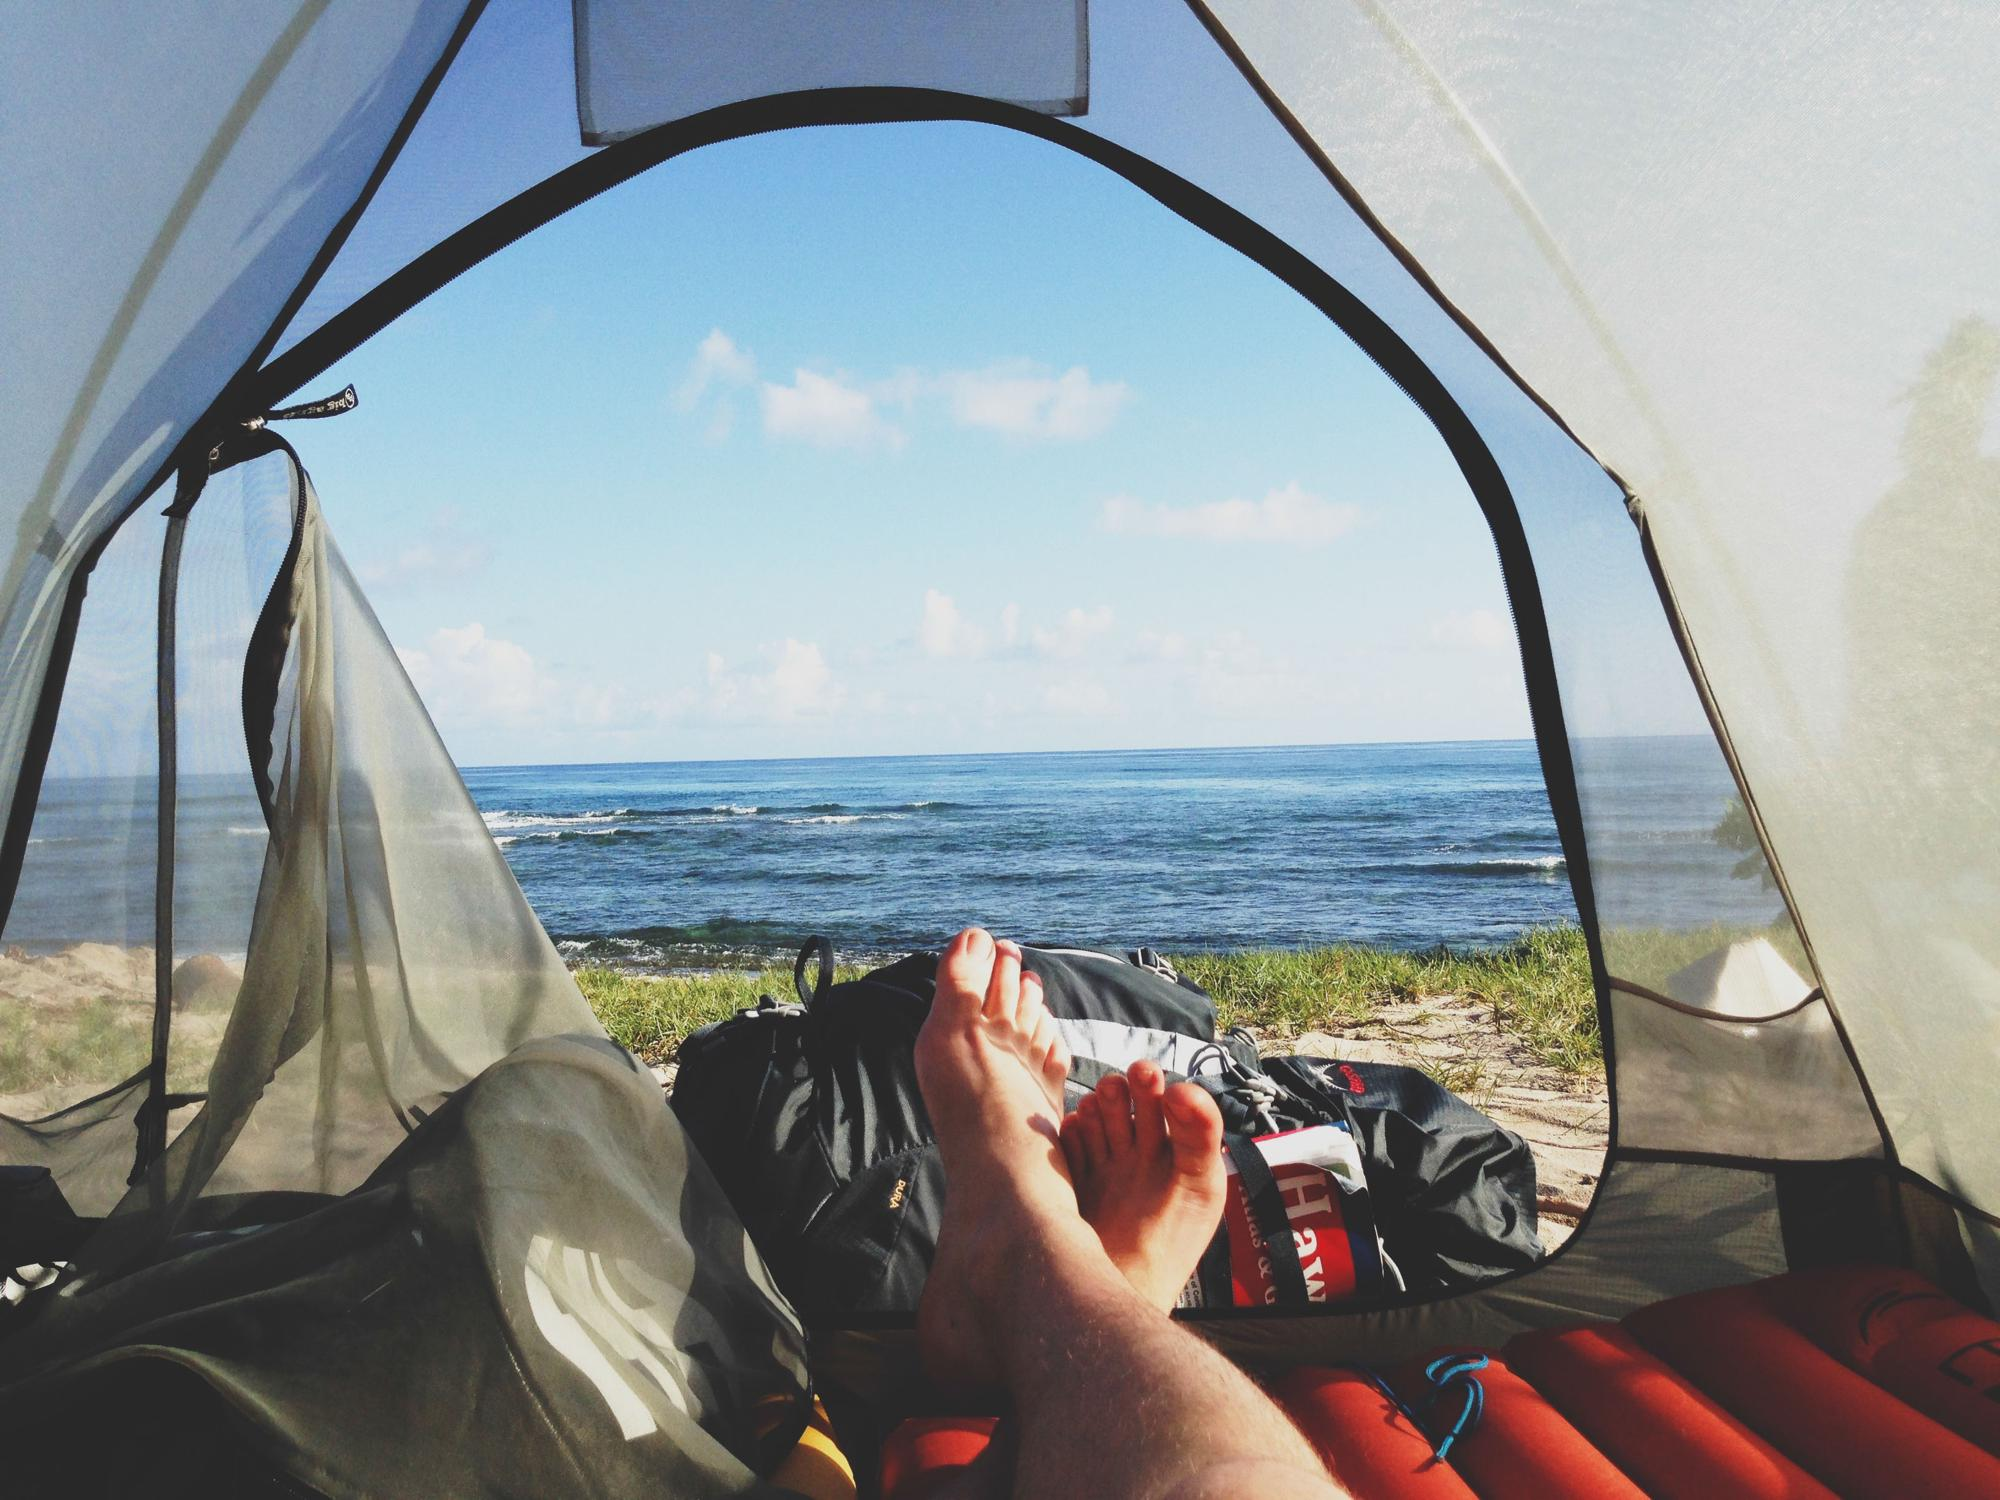 Wild camping by the sea